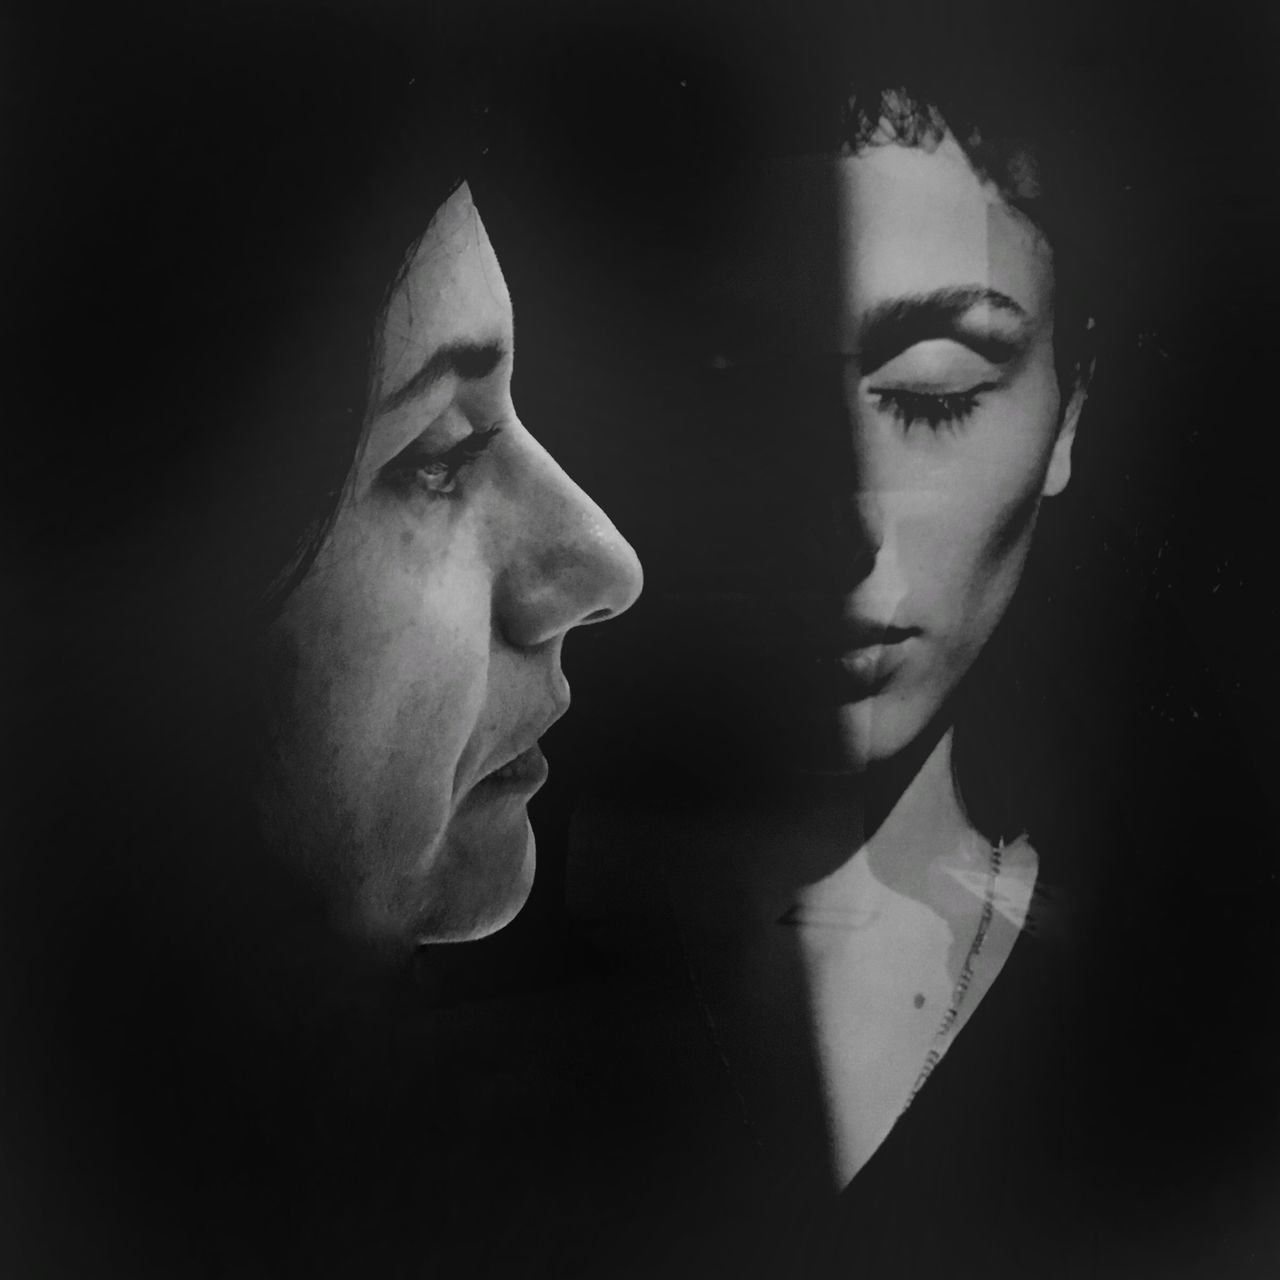 Open-Closed. Homage to Letizia Battaglia Adult Beautiful Woman Black & White Black And White Photography Blackandwhite Closed Eyes Homage Human Face Letizia Battaglia MAXXI MAXXI Museum Rome Italy MAXXI Roma Open Pain Painful Portrait Portrait Of A Woman Potraiture Young Adult Young Women